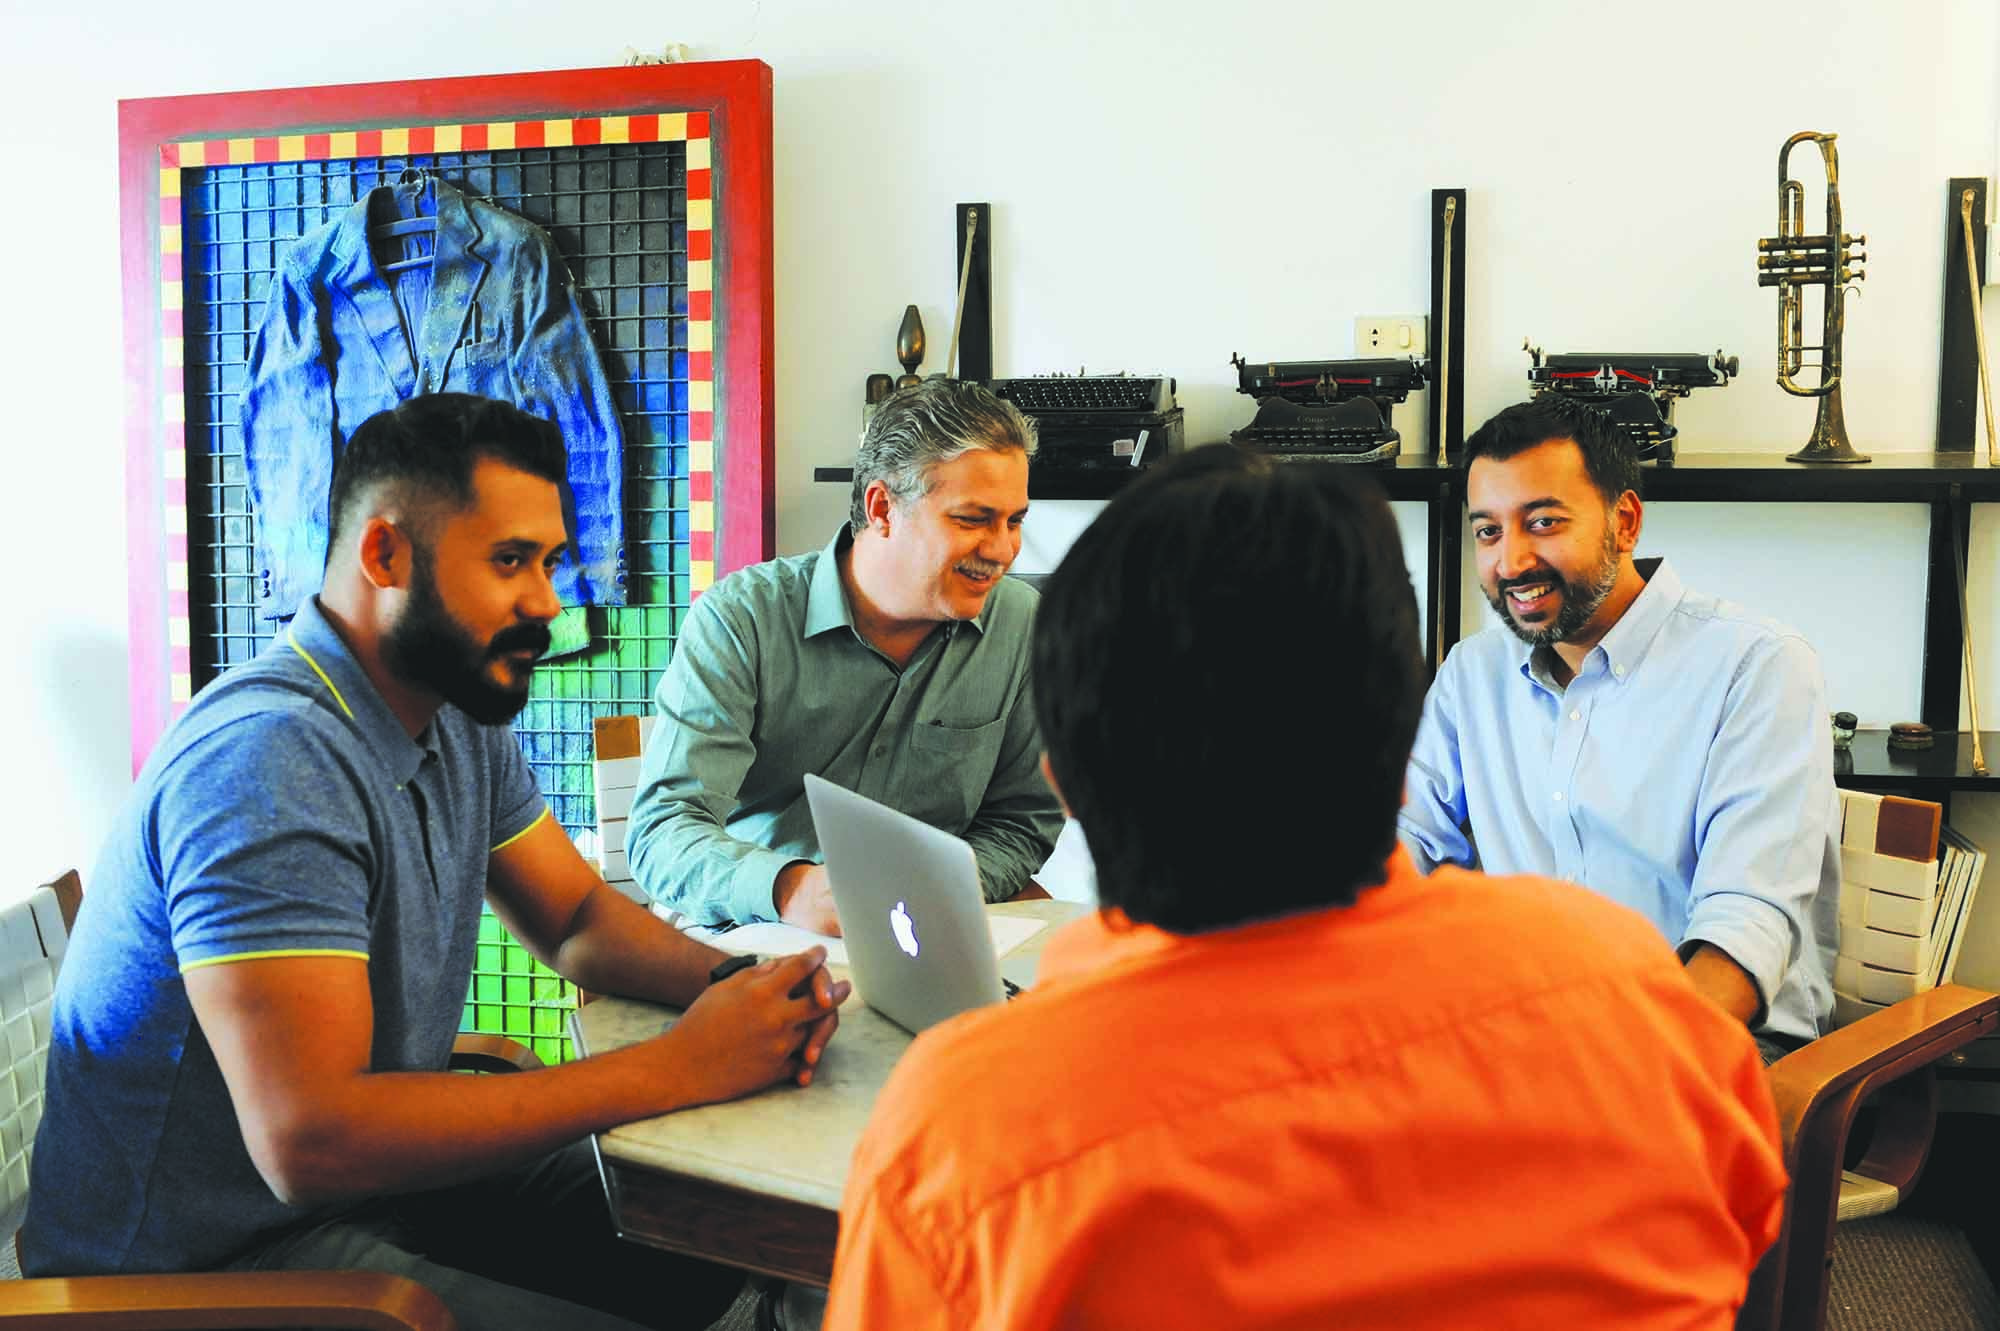 Gibran Mir, CEO, Circuit DRAFTFCB, discussing a forthcoming campaign with his Art Director, Ghazi Salahuddin (seated next to him) and his Client Services Director (in orange). Circuit was established by Gibran Mir's father, the well known modern artist, Imran Mir in 1997. In this respect, Gibran Mir has big shoes to fill. Imran Mir was a trail blazing designer. Before he started Circuit, he set up the design unit for The Dawn Media Group, where he redesigned many of their publications, including the newspaper. At Circuit, Imran Mir is best remembered for his work on brands such as Good Milk, Habib Oil and of course MCB. His rebranding of MCB in the late nineties was followed by a change of signage for their 1,400 branches nationwide and is considered to be one of the most refreshing design upgrades the streets of Pakistan have seen since. In 1998, Circuit was affiliated with DRAFTFCB. (photo: Arif Mahmood/ Dawn White Star)